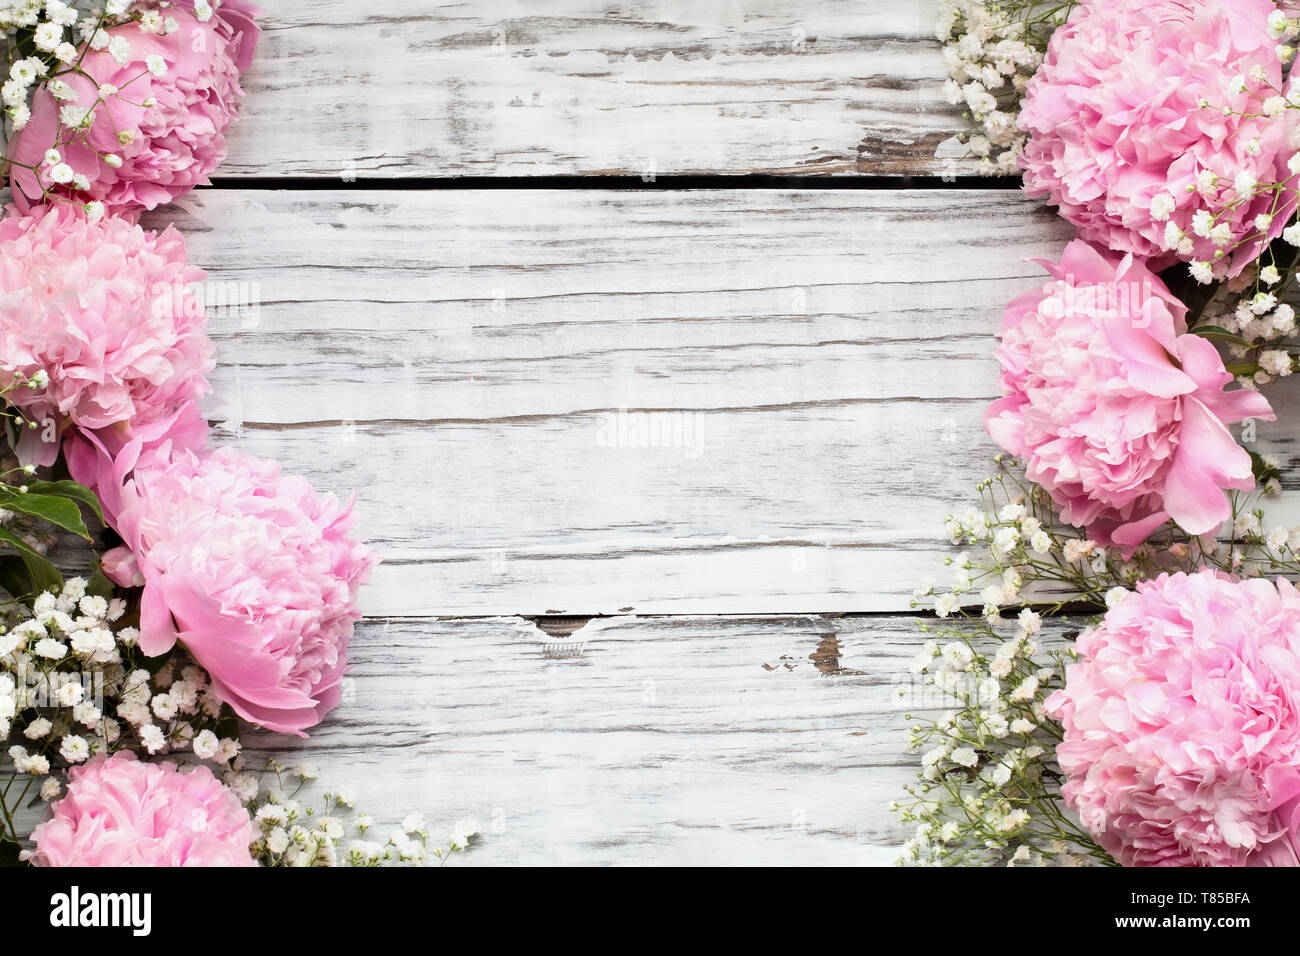 Pink Peonies And Baby S Breath Flowers Over A White Rustic Wood